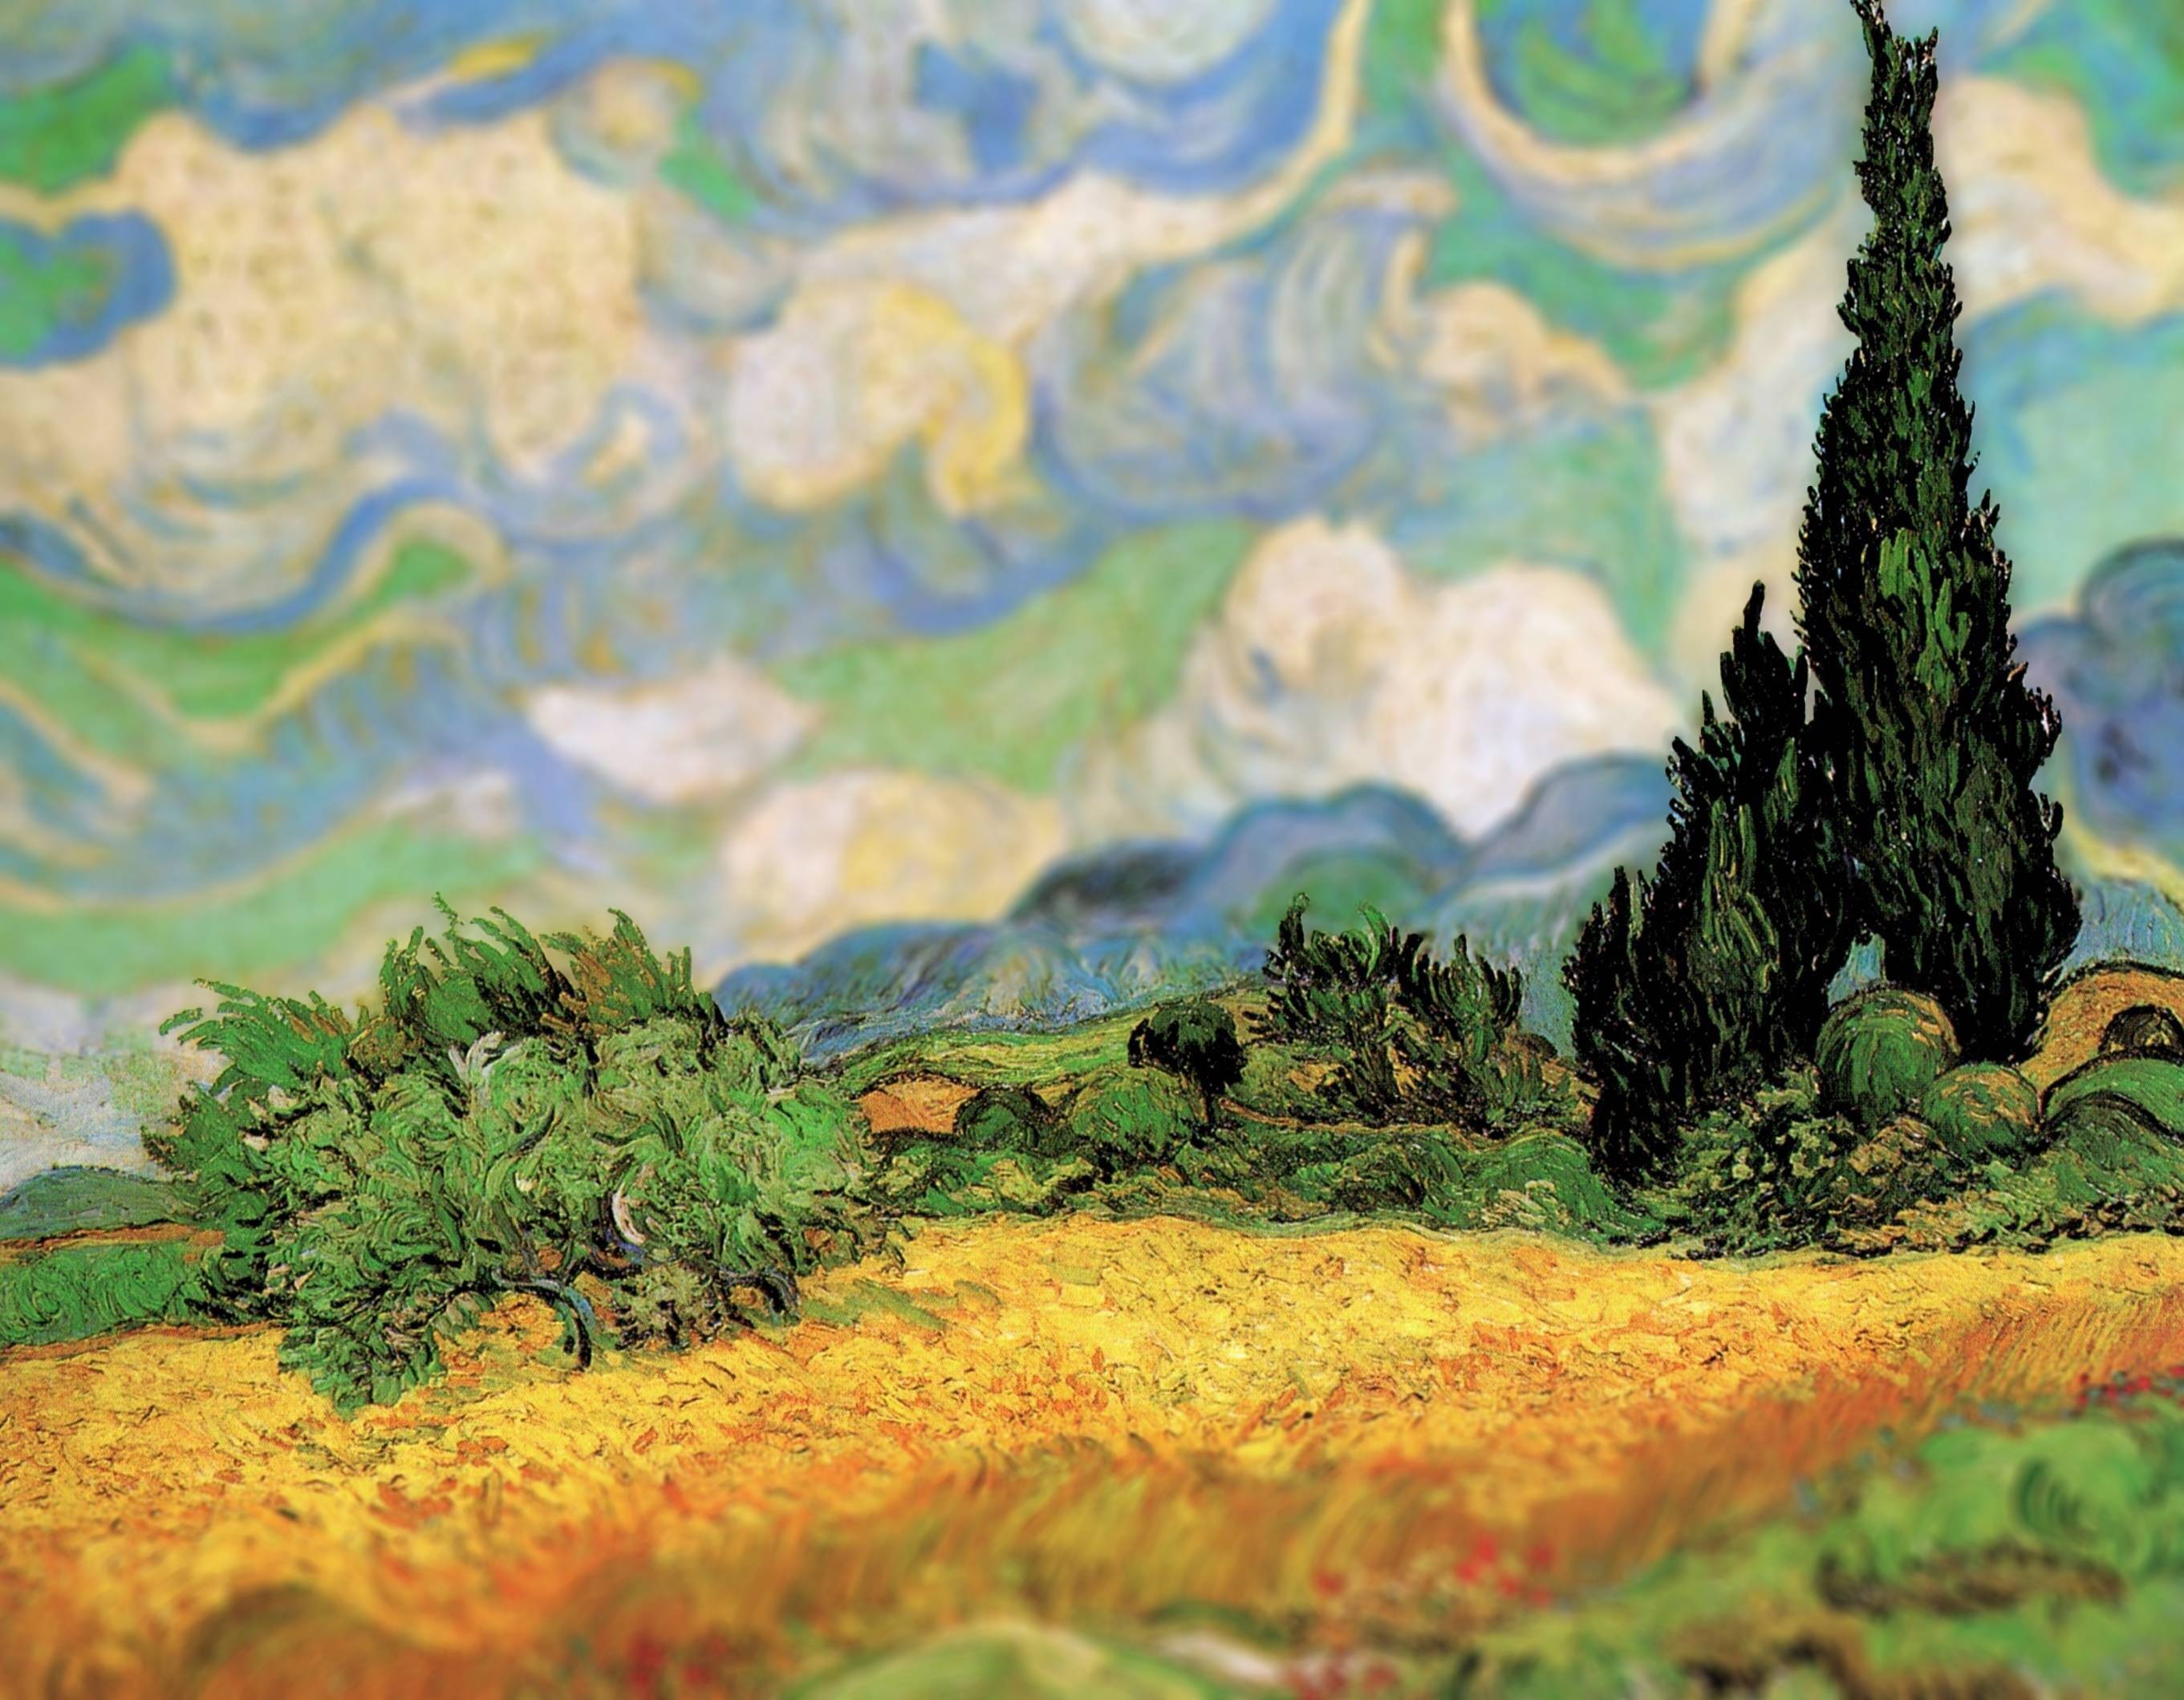 Vincent Van Gogh's Art as Seen Through a Tilt-Shift Lens. #artpeople